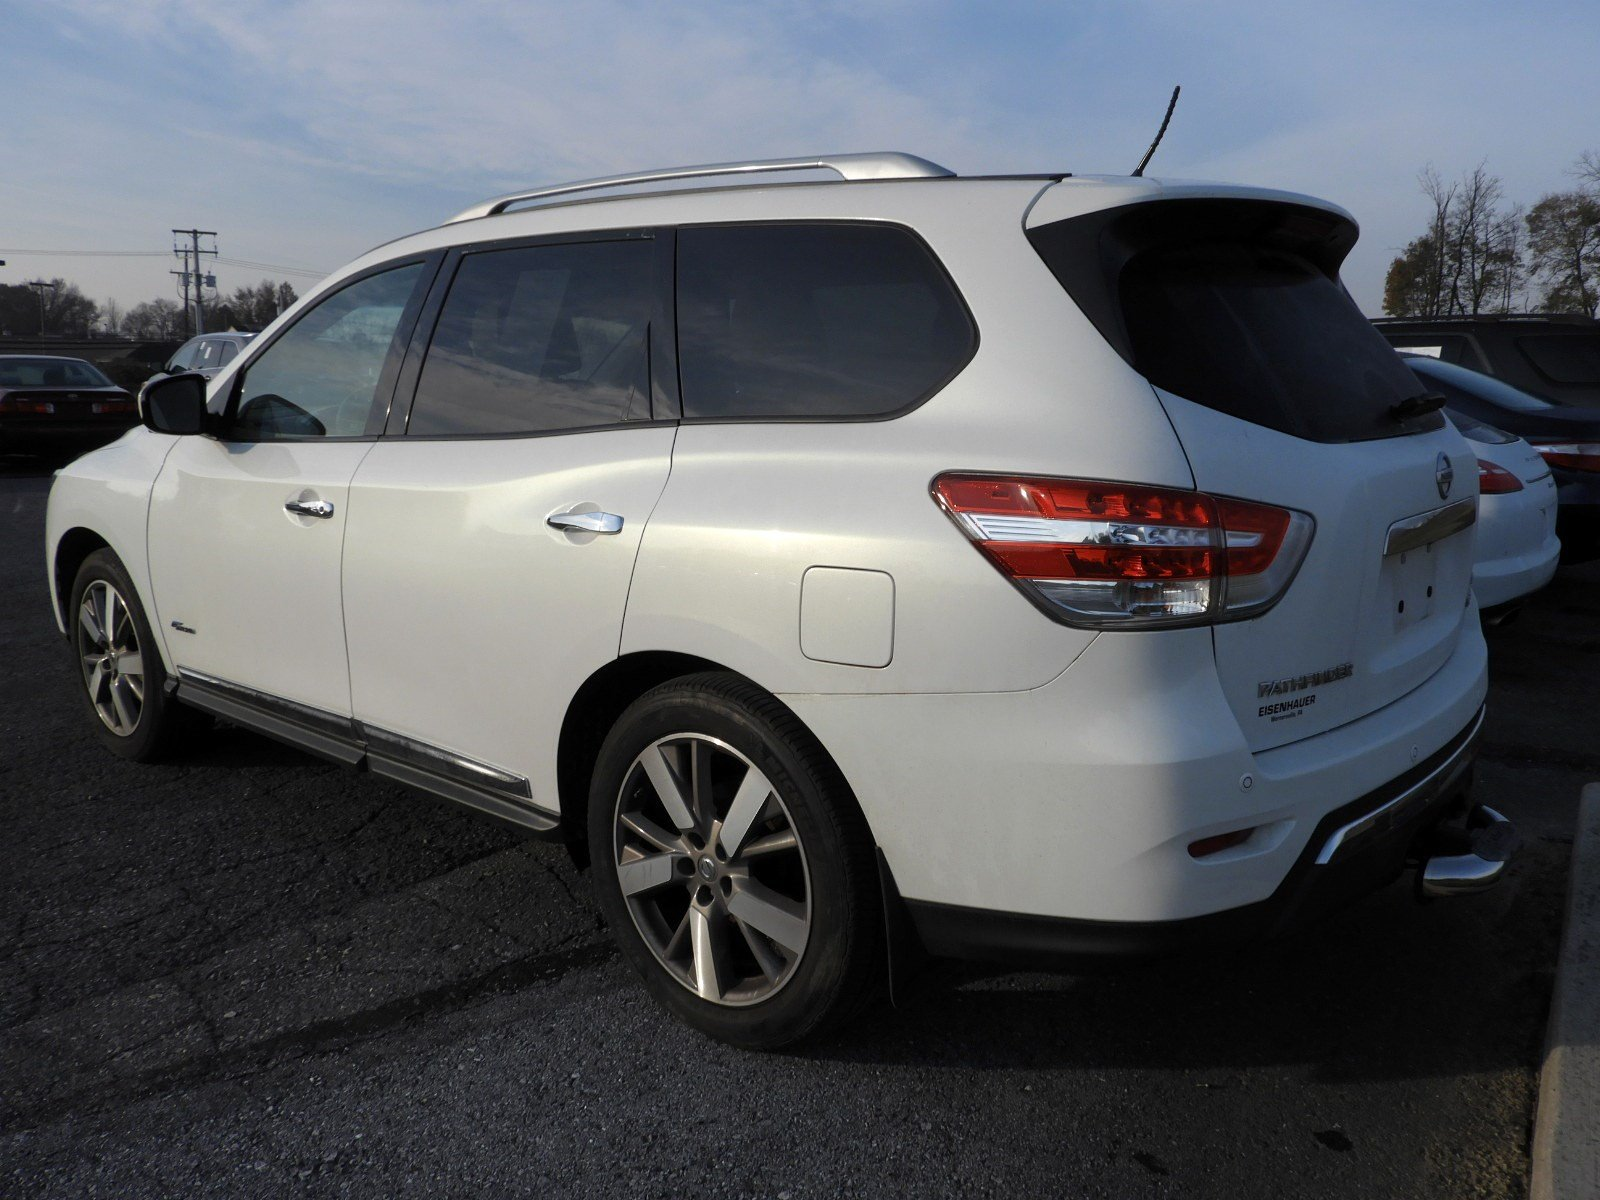 Pre-Owned 2014 Nissan Pathfinder Platinum Hybrid